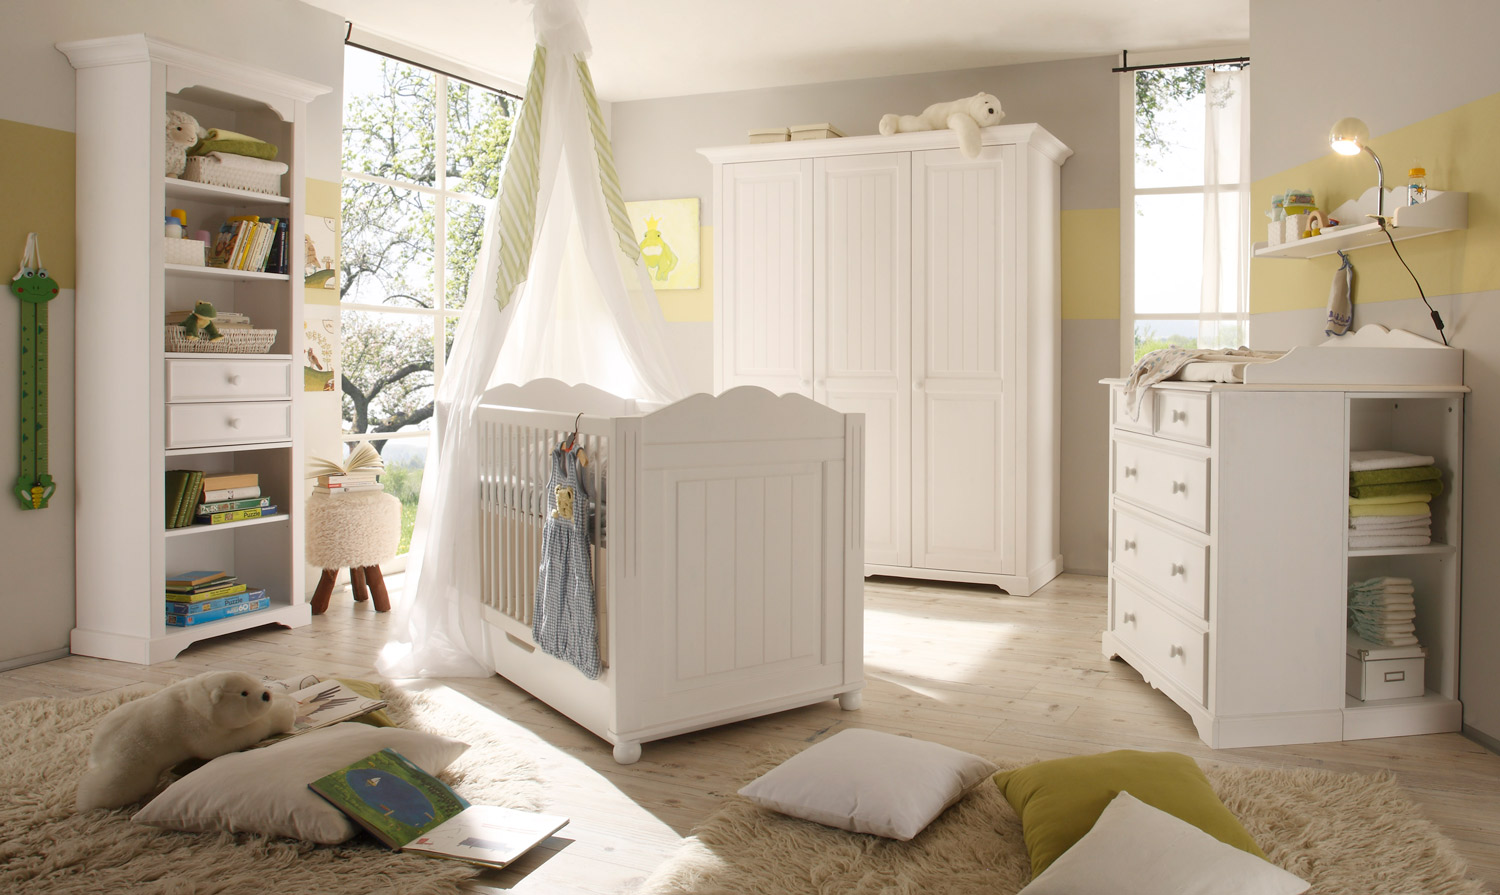 cinderella premium kinderbett in 70 x 140 cm im wallenfels. Black Bedroom Furniture Sets. Home Design Ideas